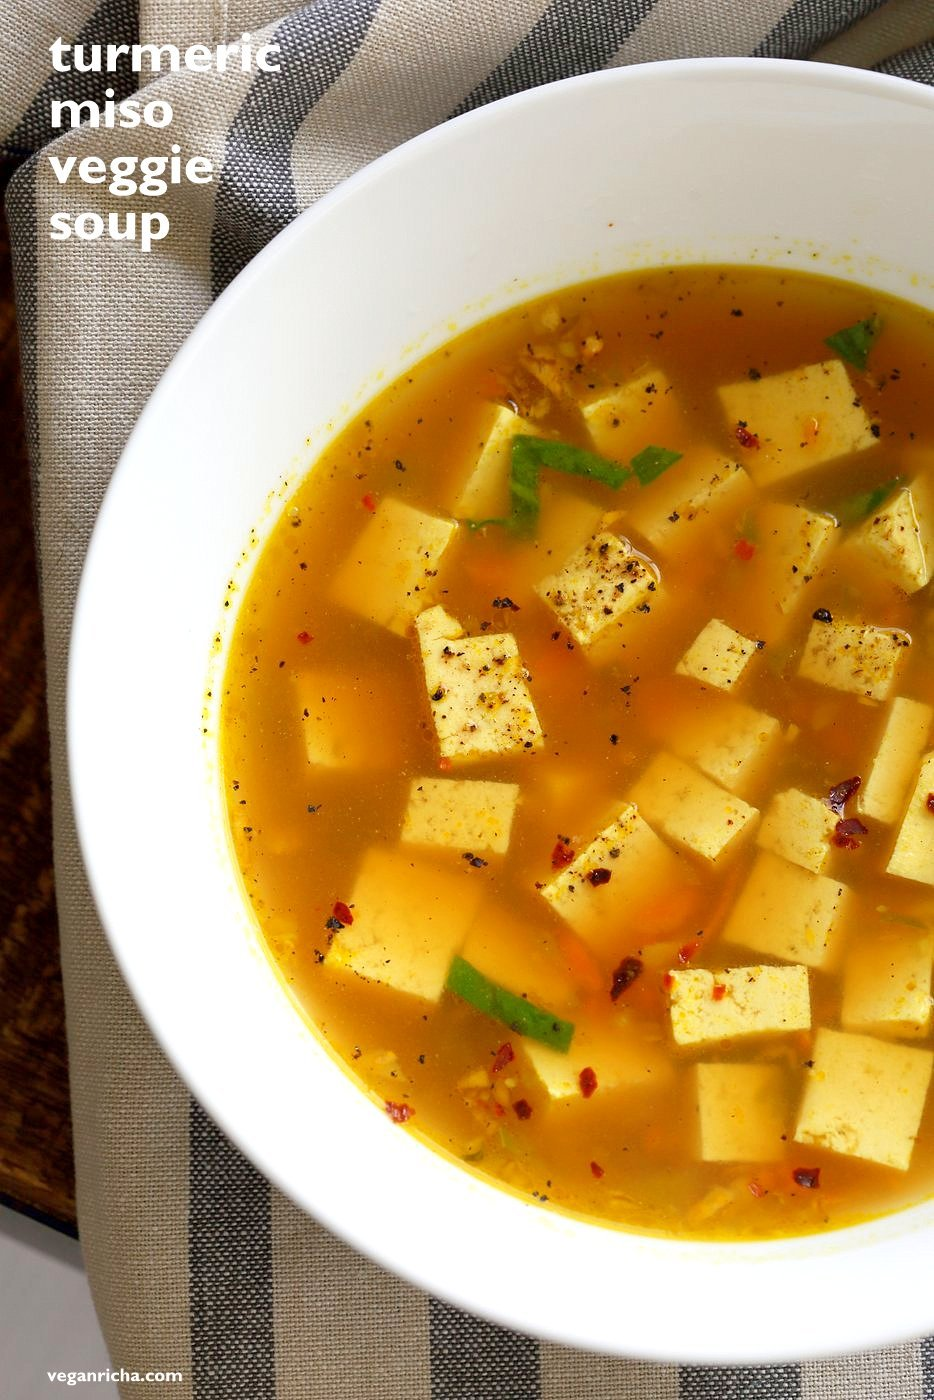 Vegan Dinner Party Ideas Part - 35: Turmeric Miso Soup With Ginger, Garlic And Tofu